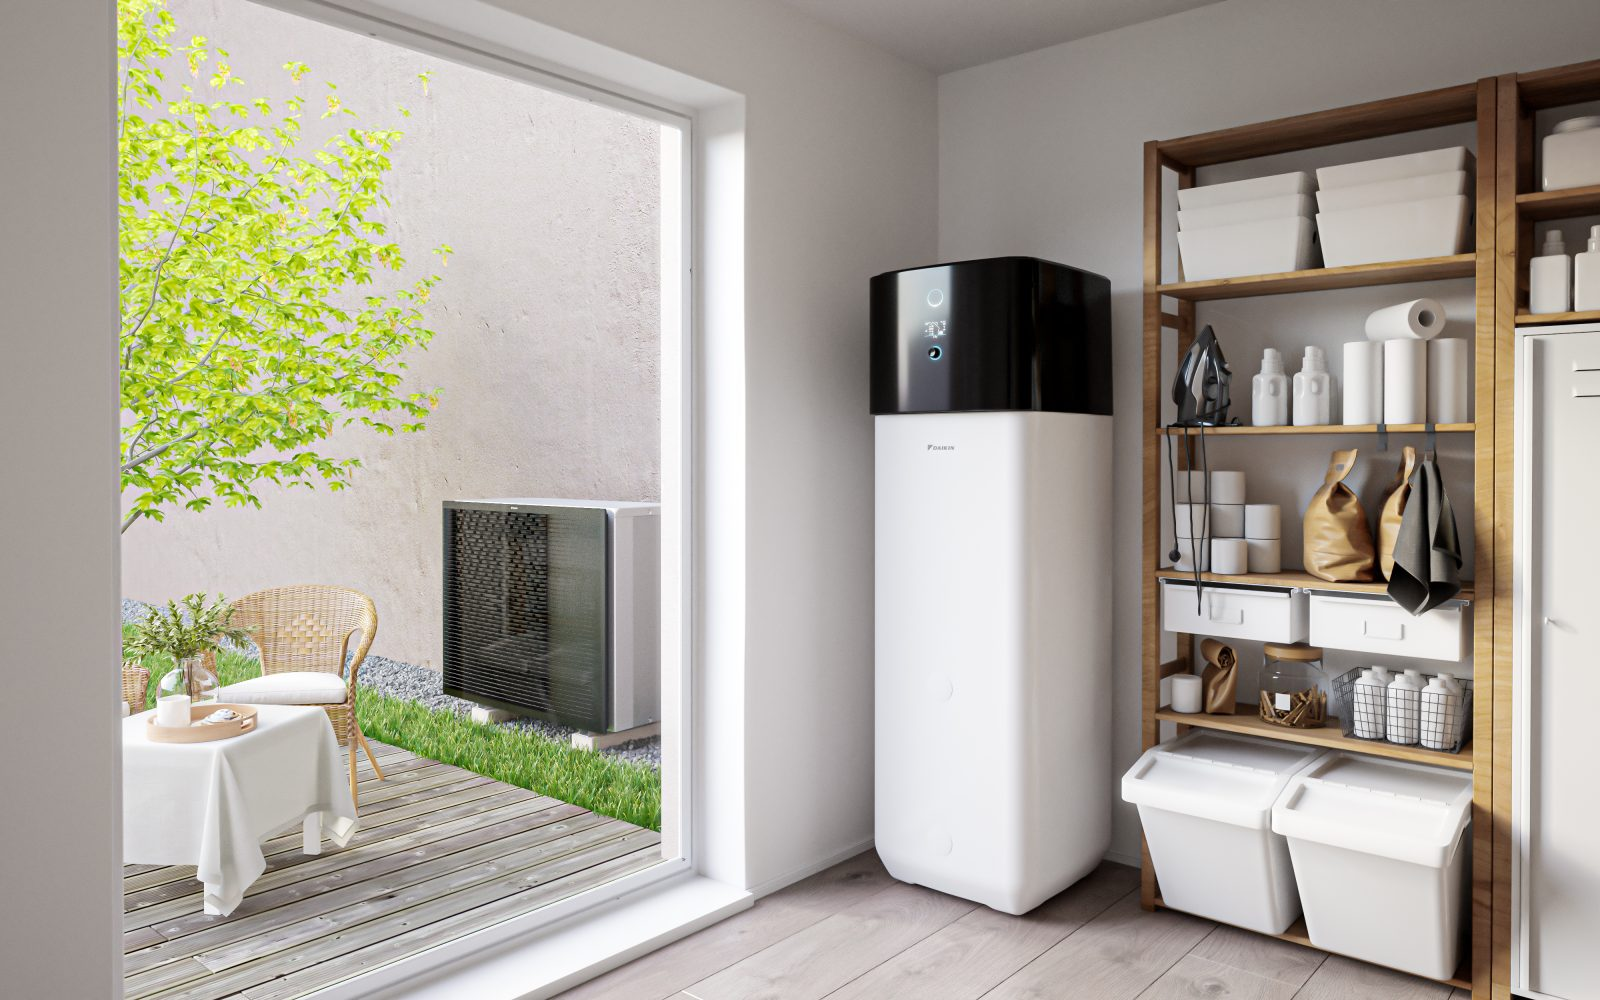 Daikin's Altherma heat pump. Image: Dailkin.